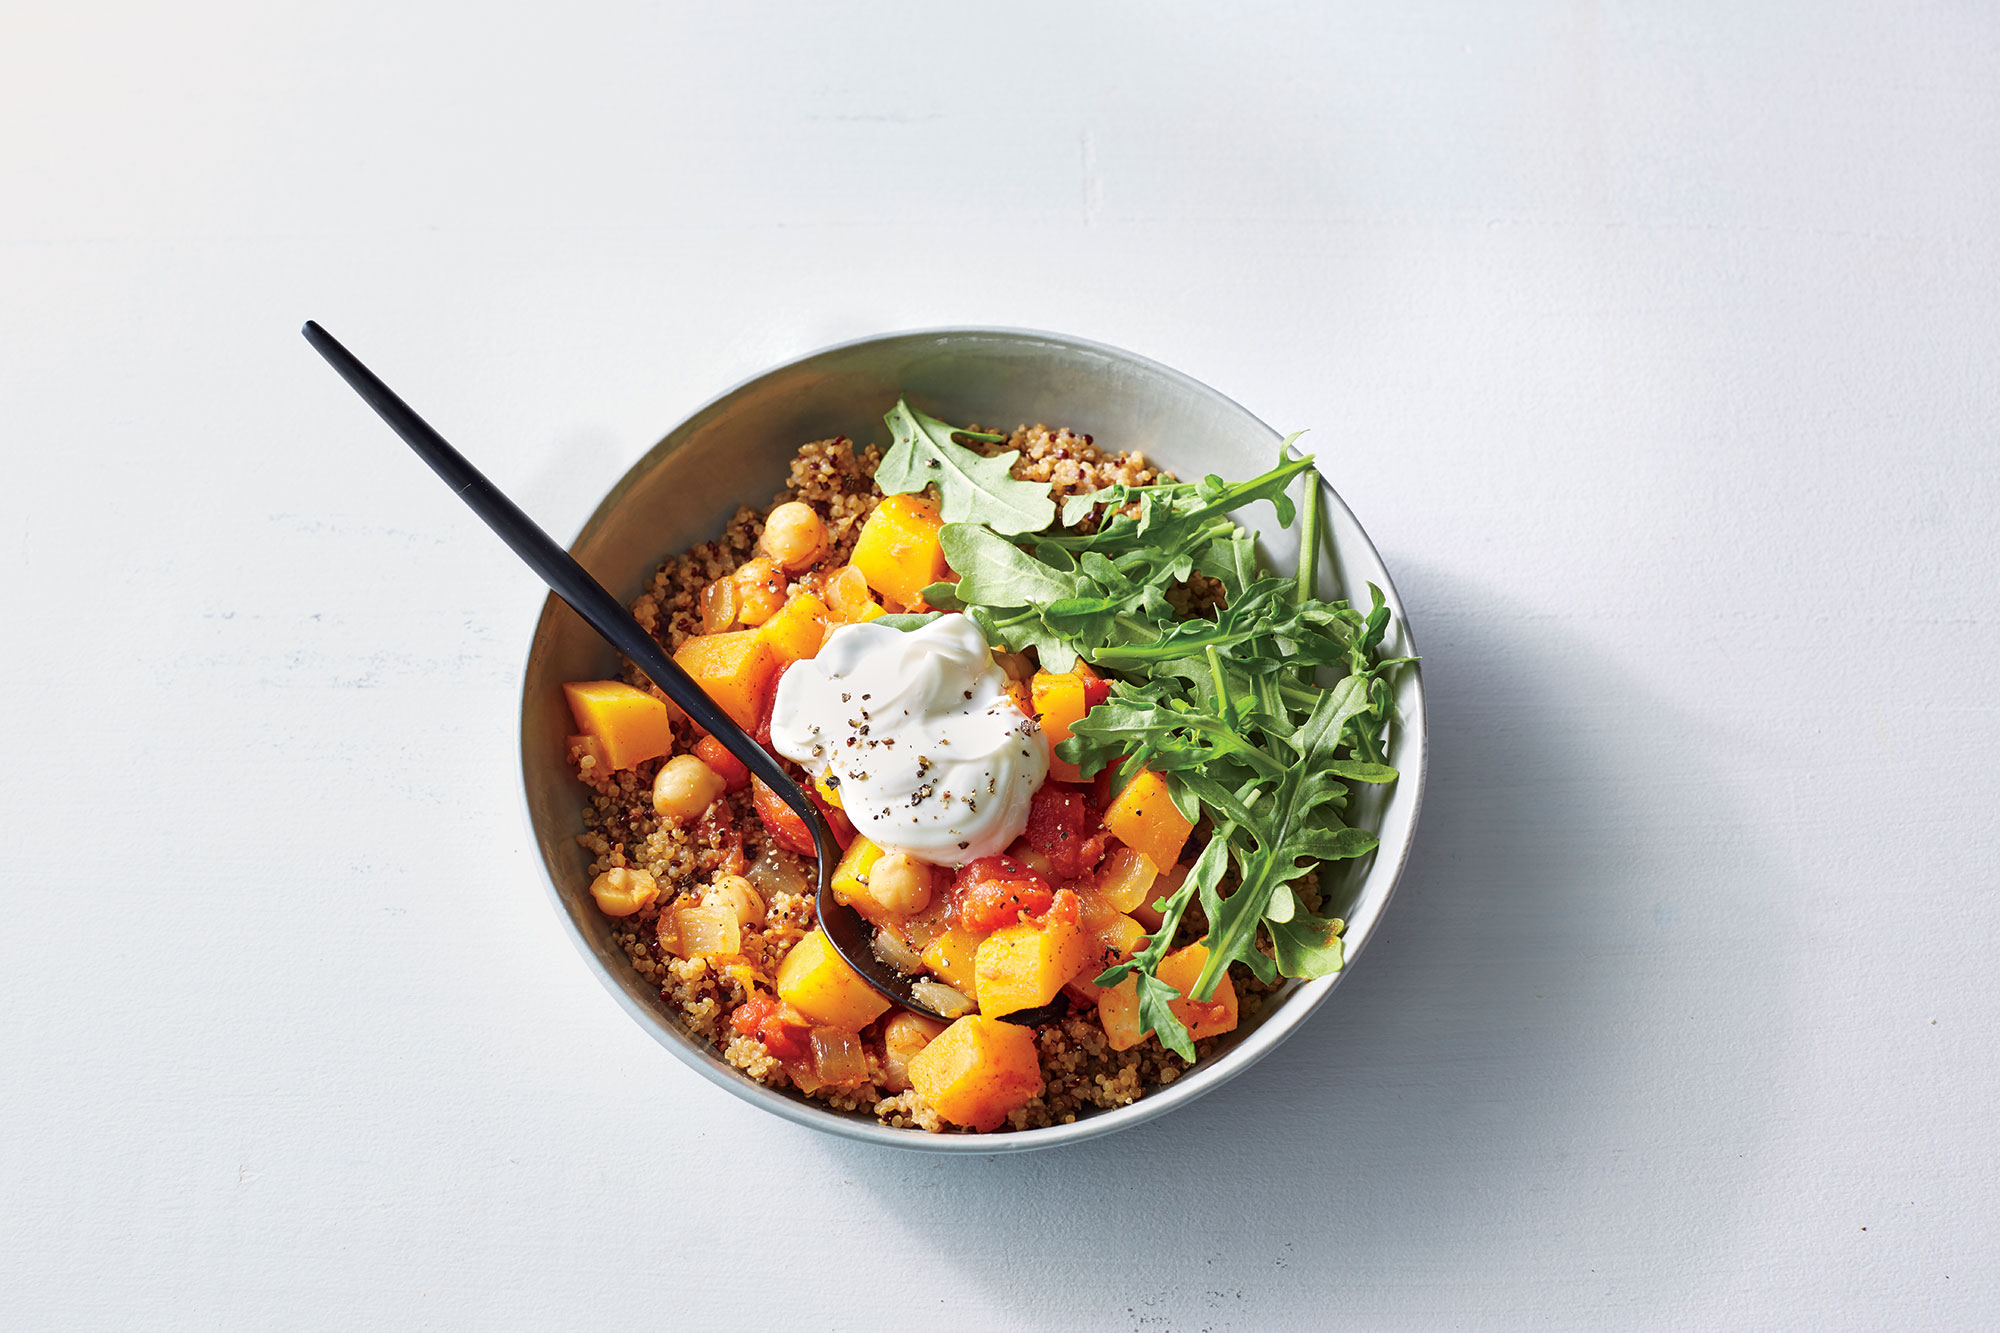 Moroccan Butternut Squash and Chickpea Stew